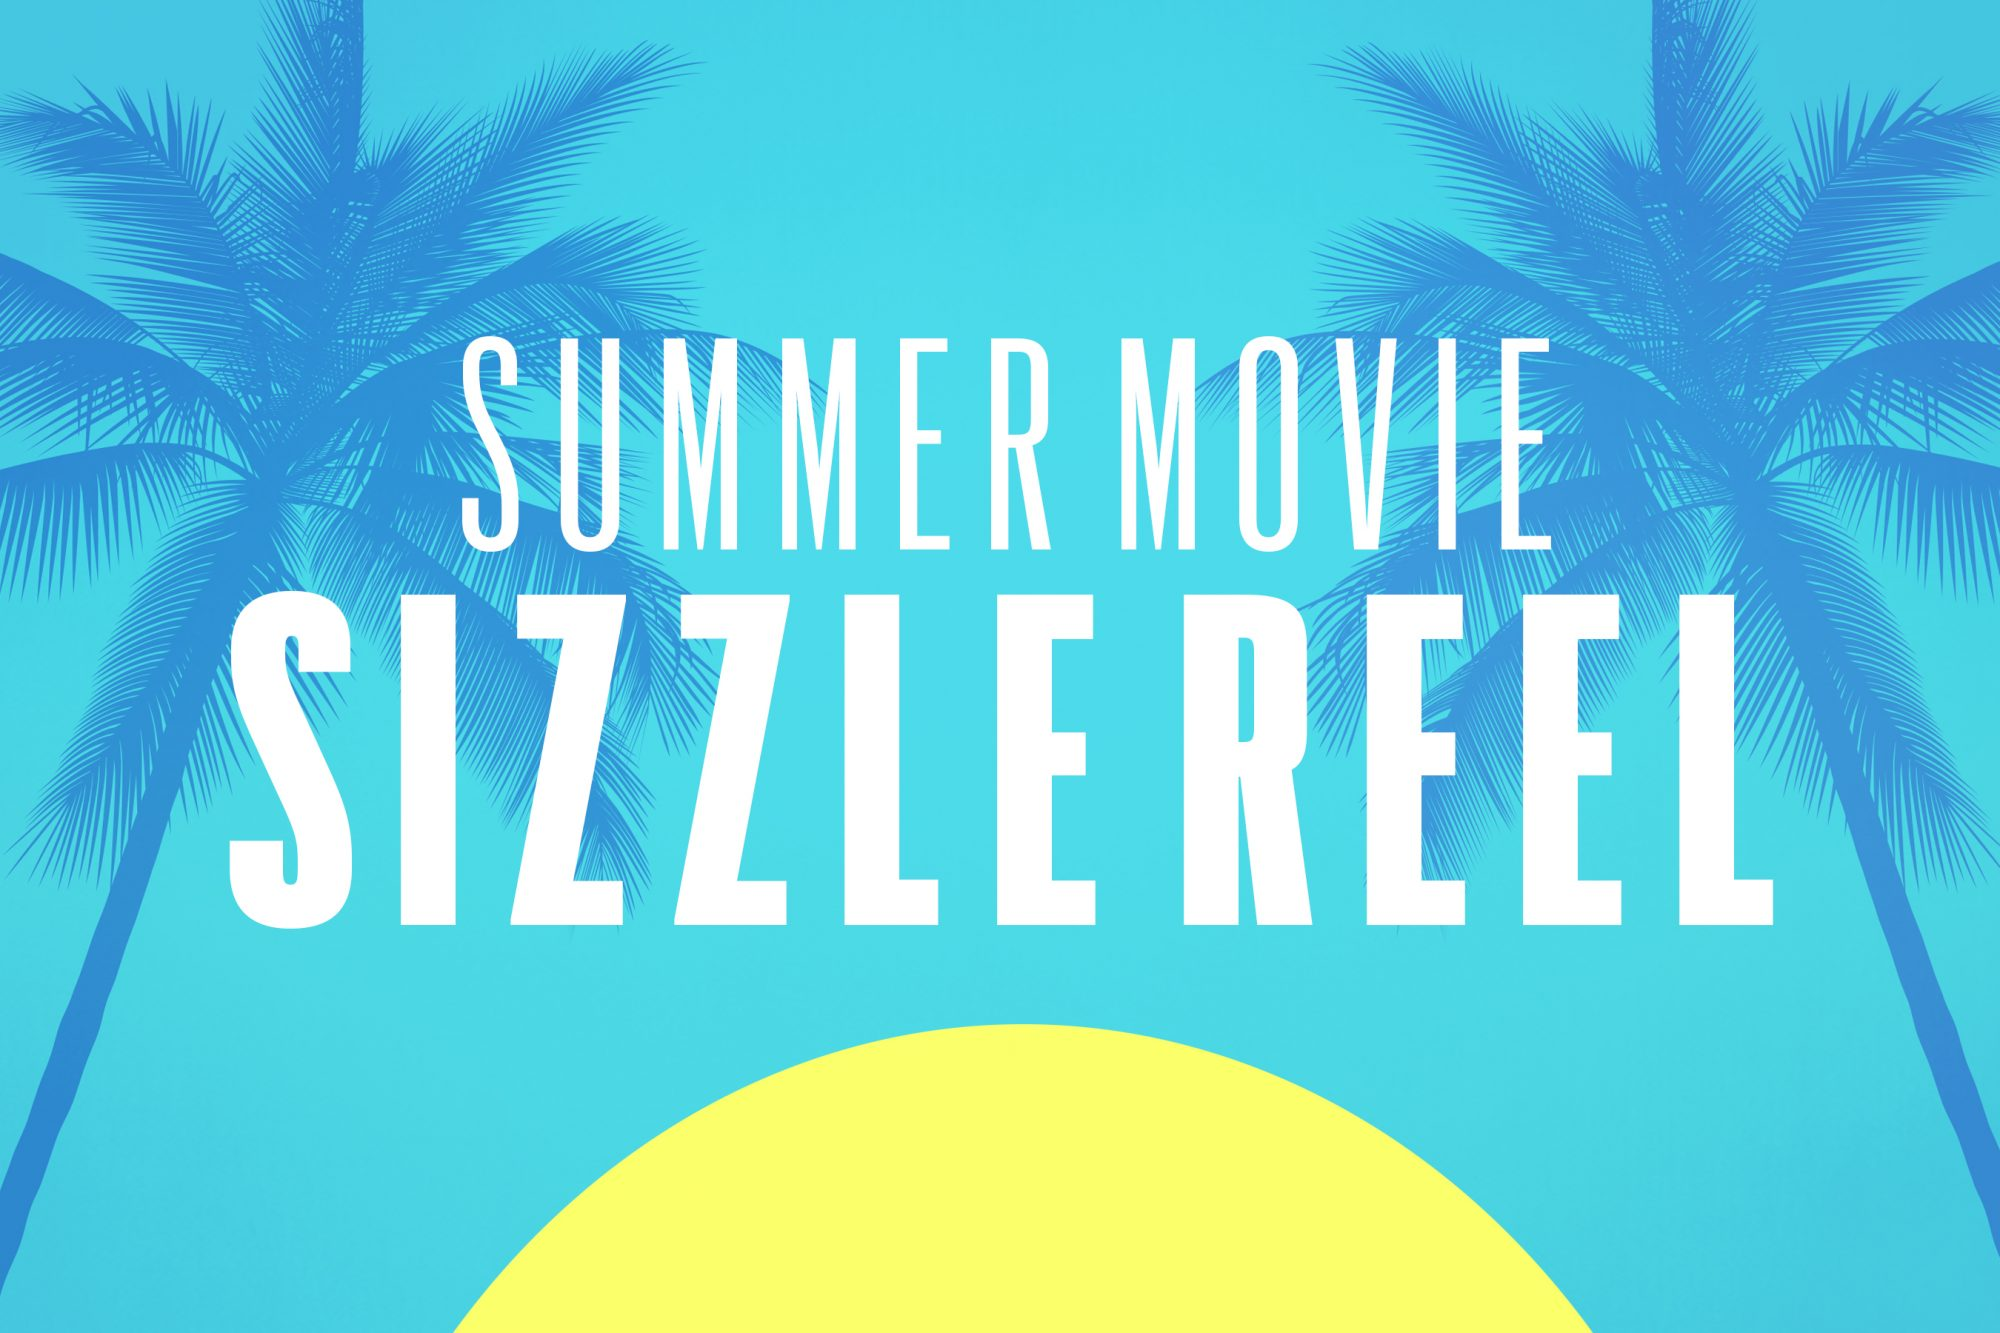 summer movie sizzle reel gallery image